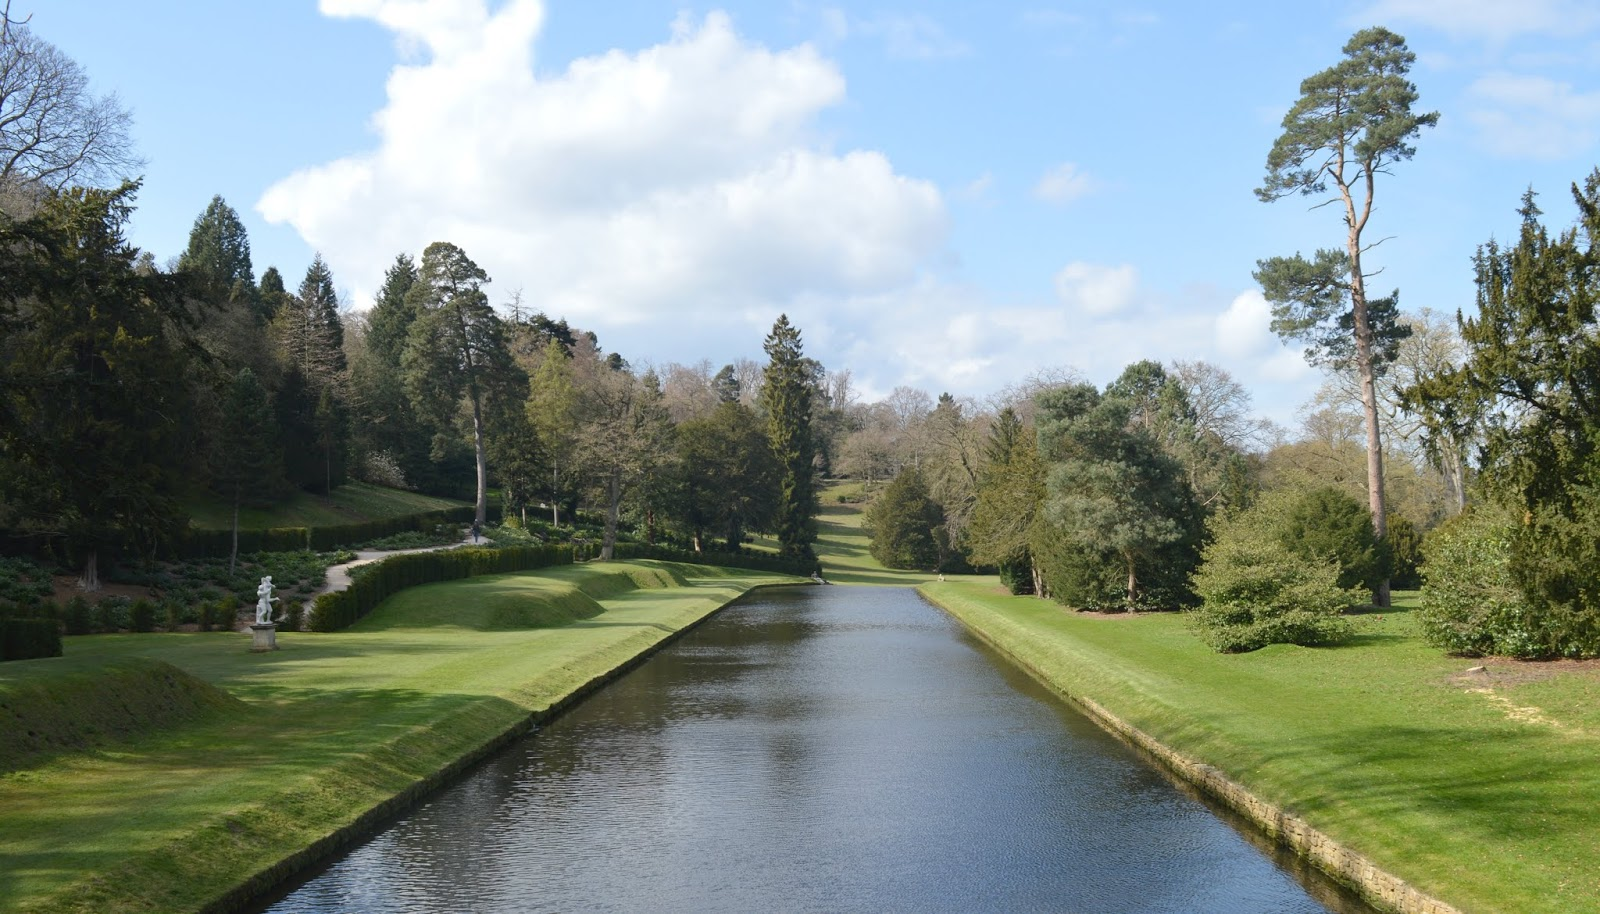 National Trust Studley Royal Water Garden